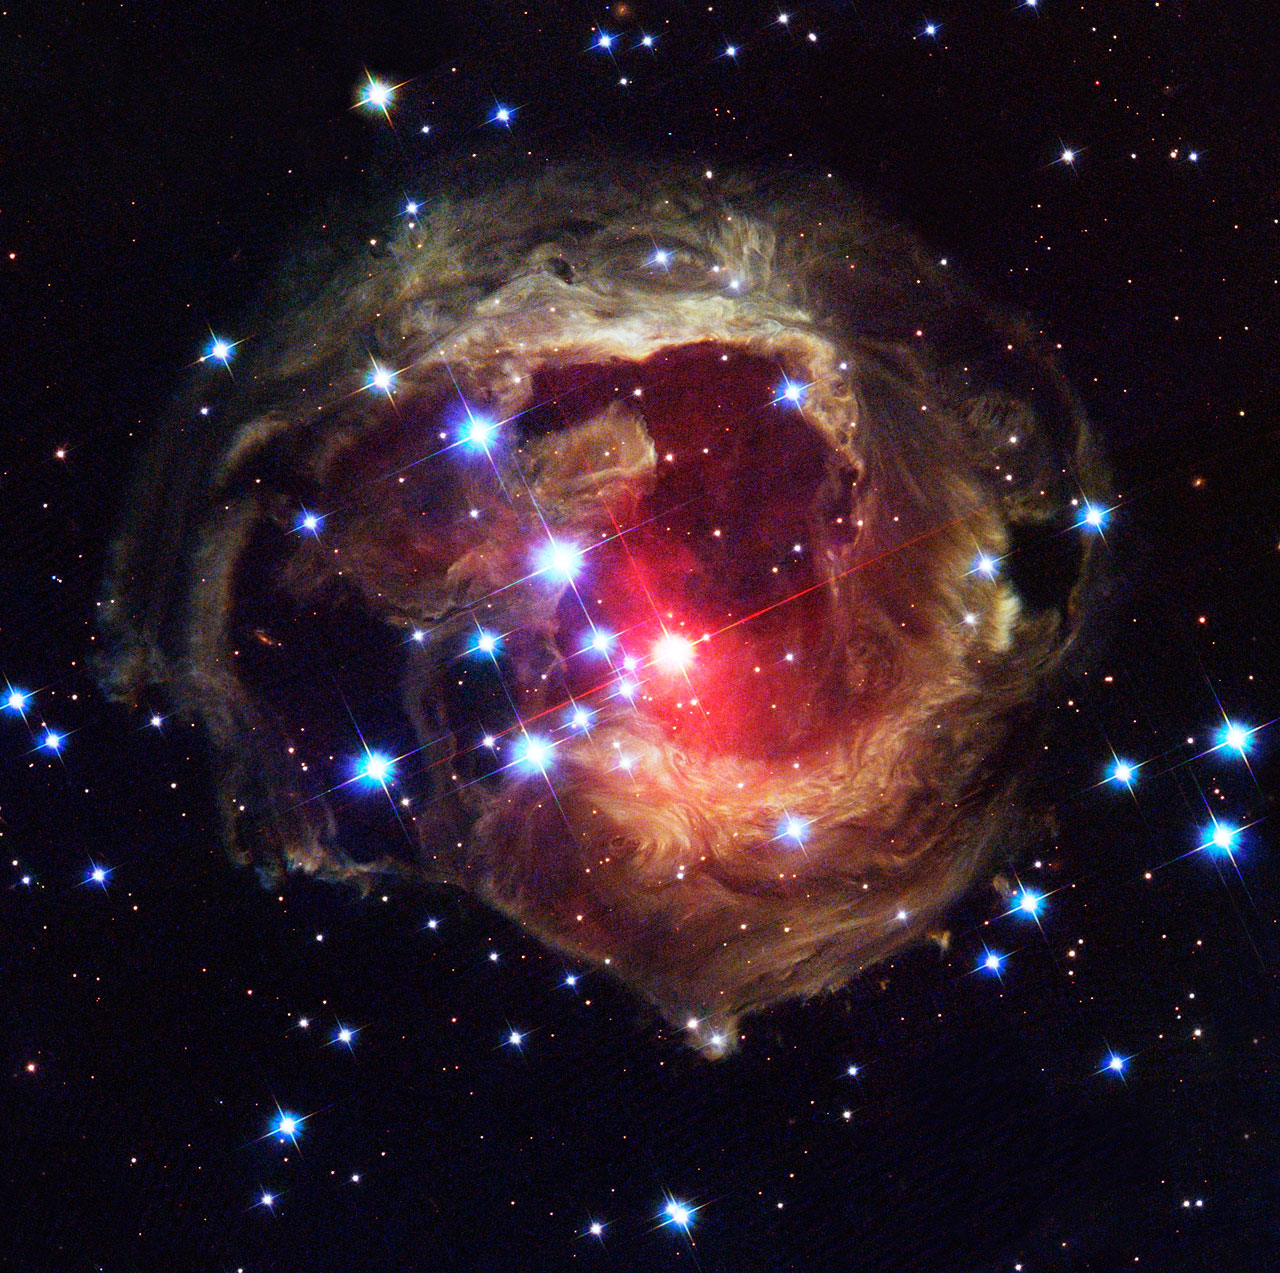 Light continues to echo three years after stellar outburst